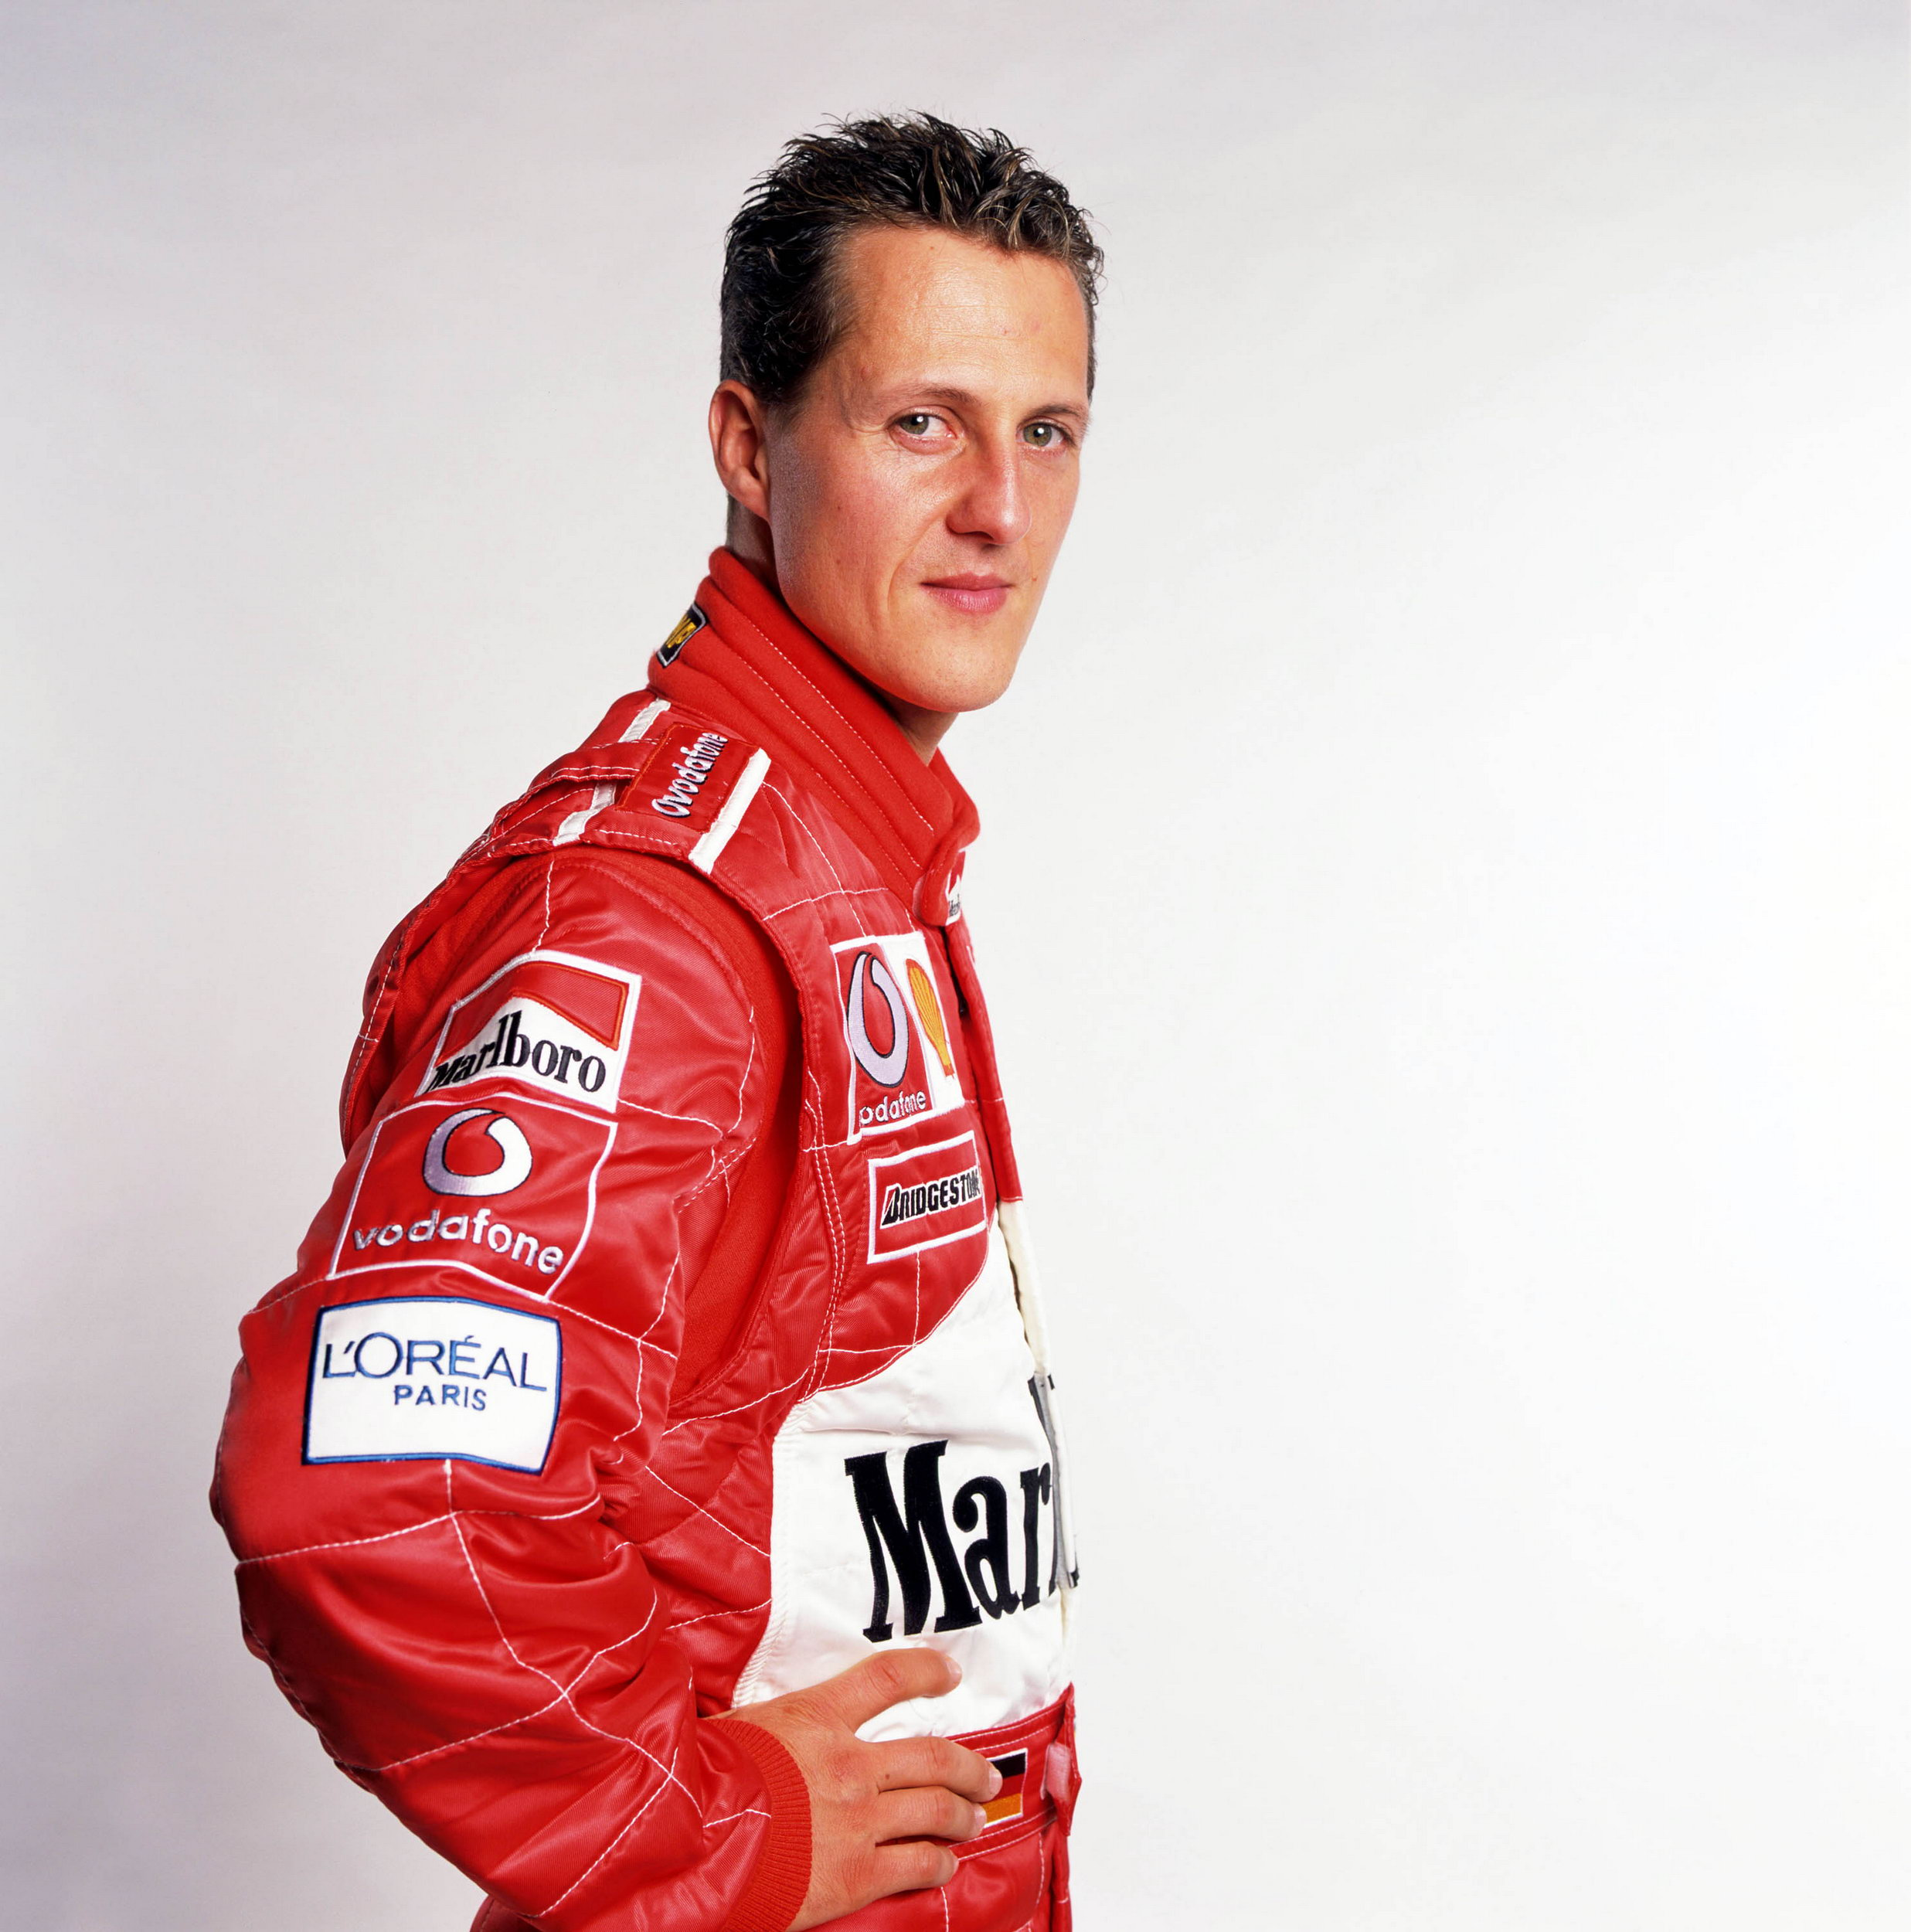 michael schumacher photo 12 of 23 pics wallpaper photo 245627 theplace2. Black Bedroom Furniture Sets. Home Design Ideas